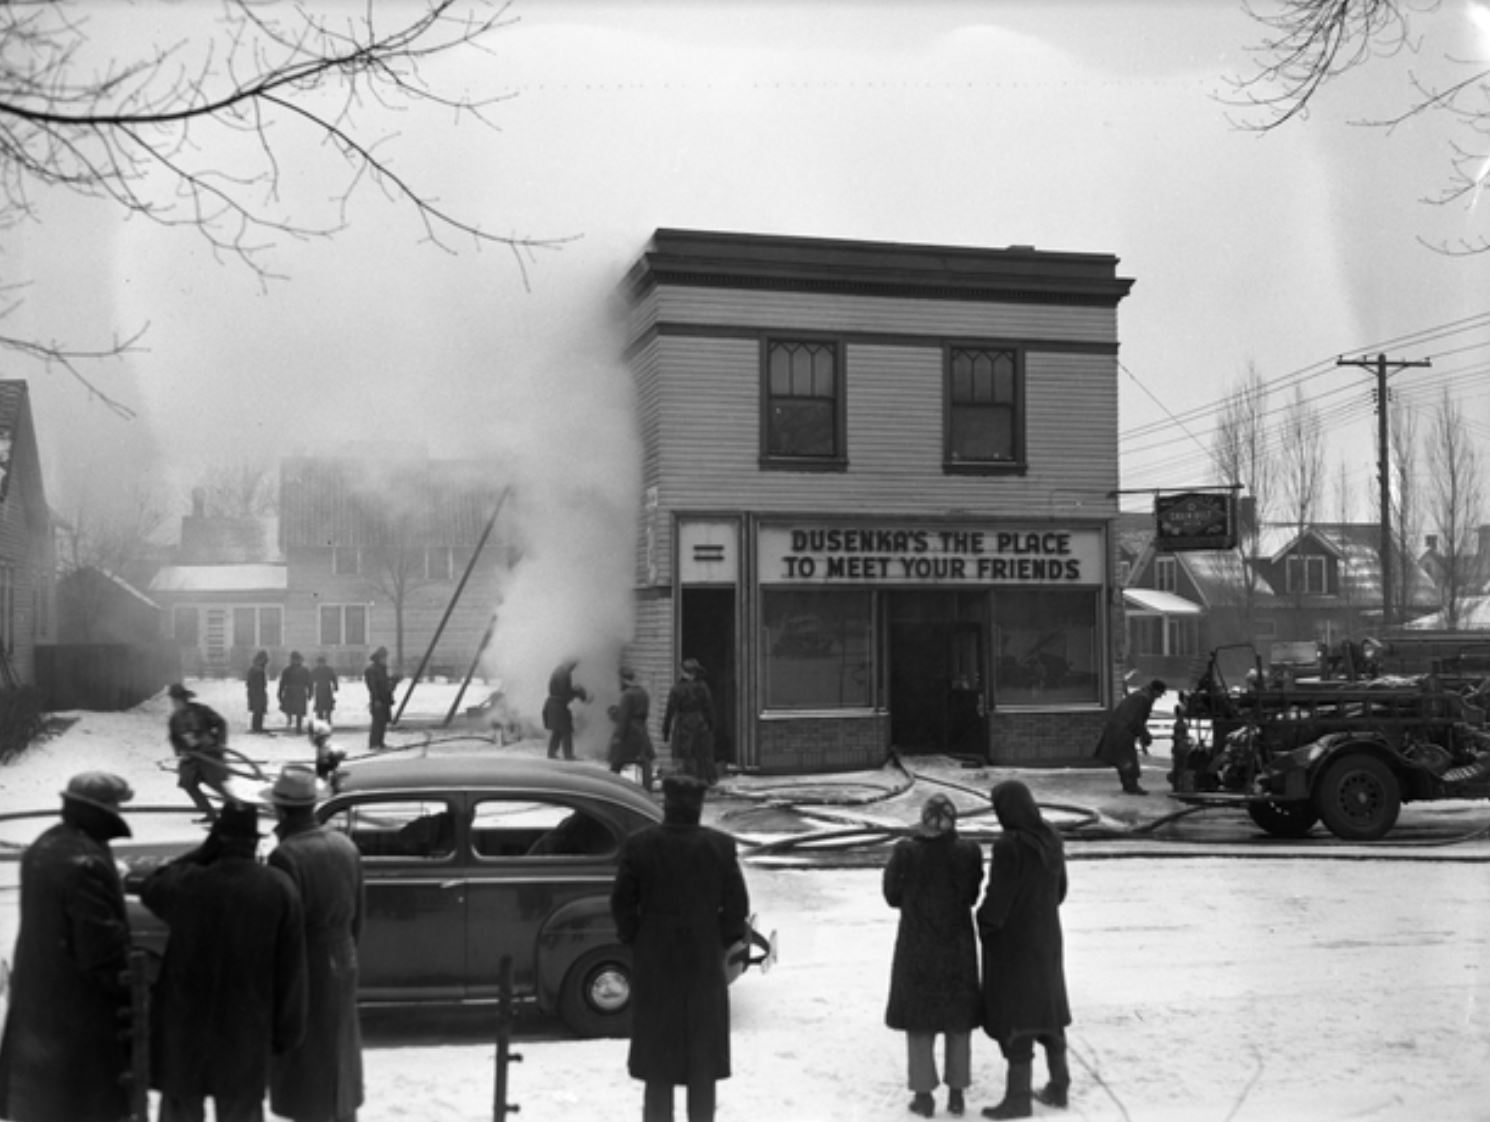 Shaw's, known as Dusenka's at the time, after a fire in the second story (image courtesy of the Minnesota Historical Society)